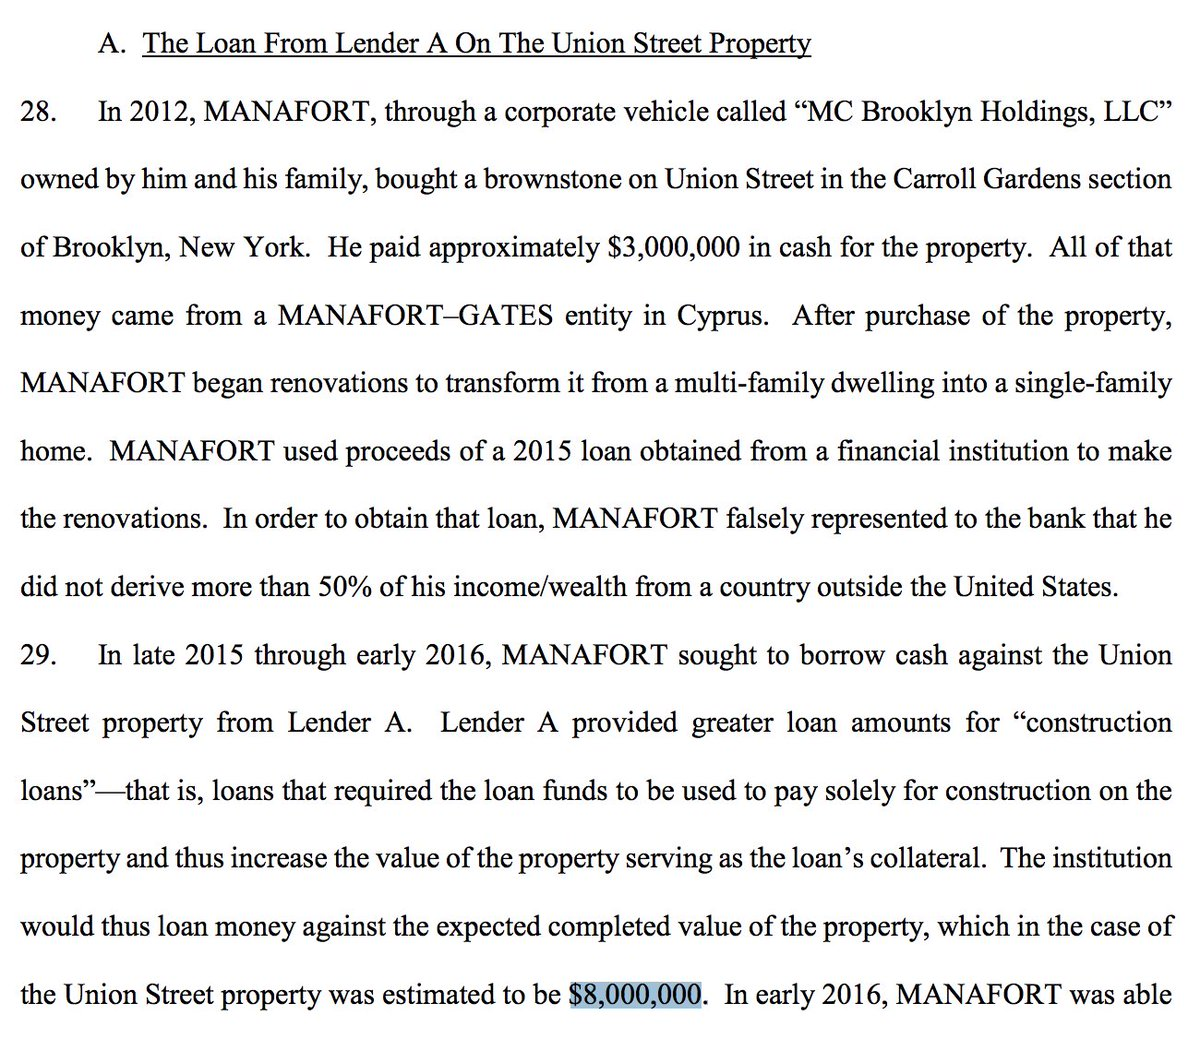 Sidenote: Carroll Gardens real estate makes a good investment, if you've got Ukrainian-backed shell corporations in Cyprus, Saint Vincent and the Seychelles to help with the down paymenthttps://t.co/E6FIAHbPgg.